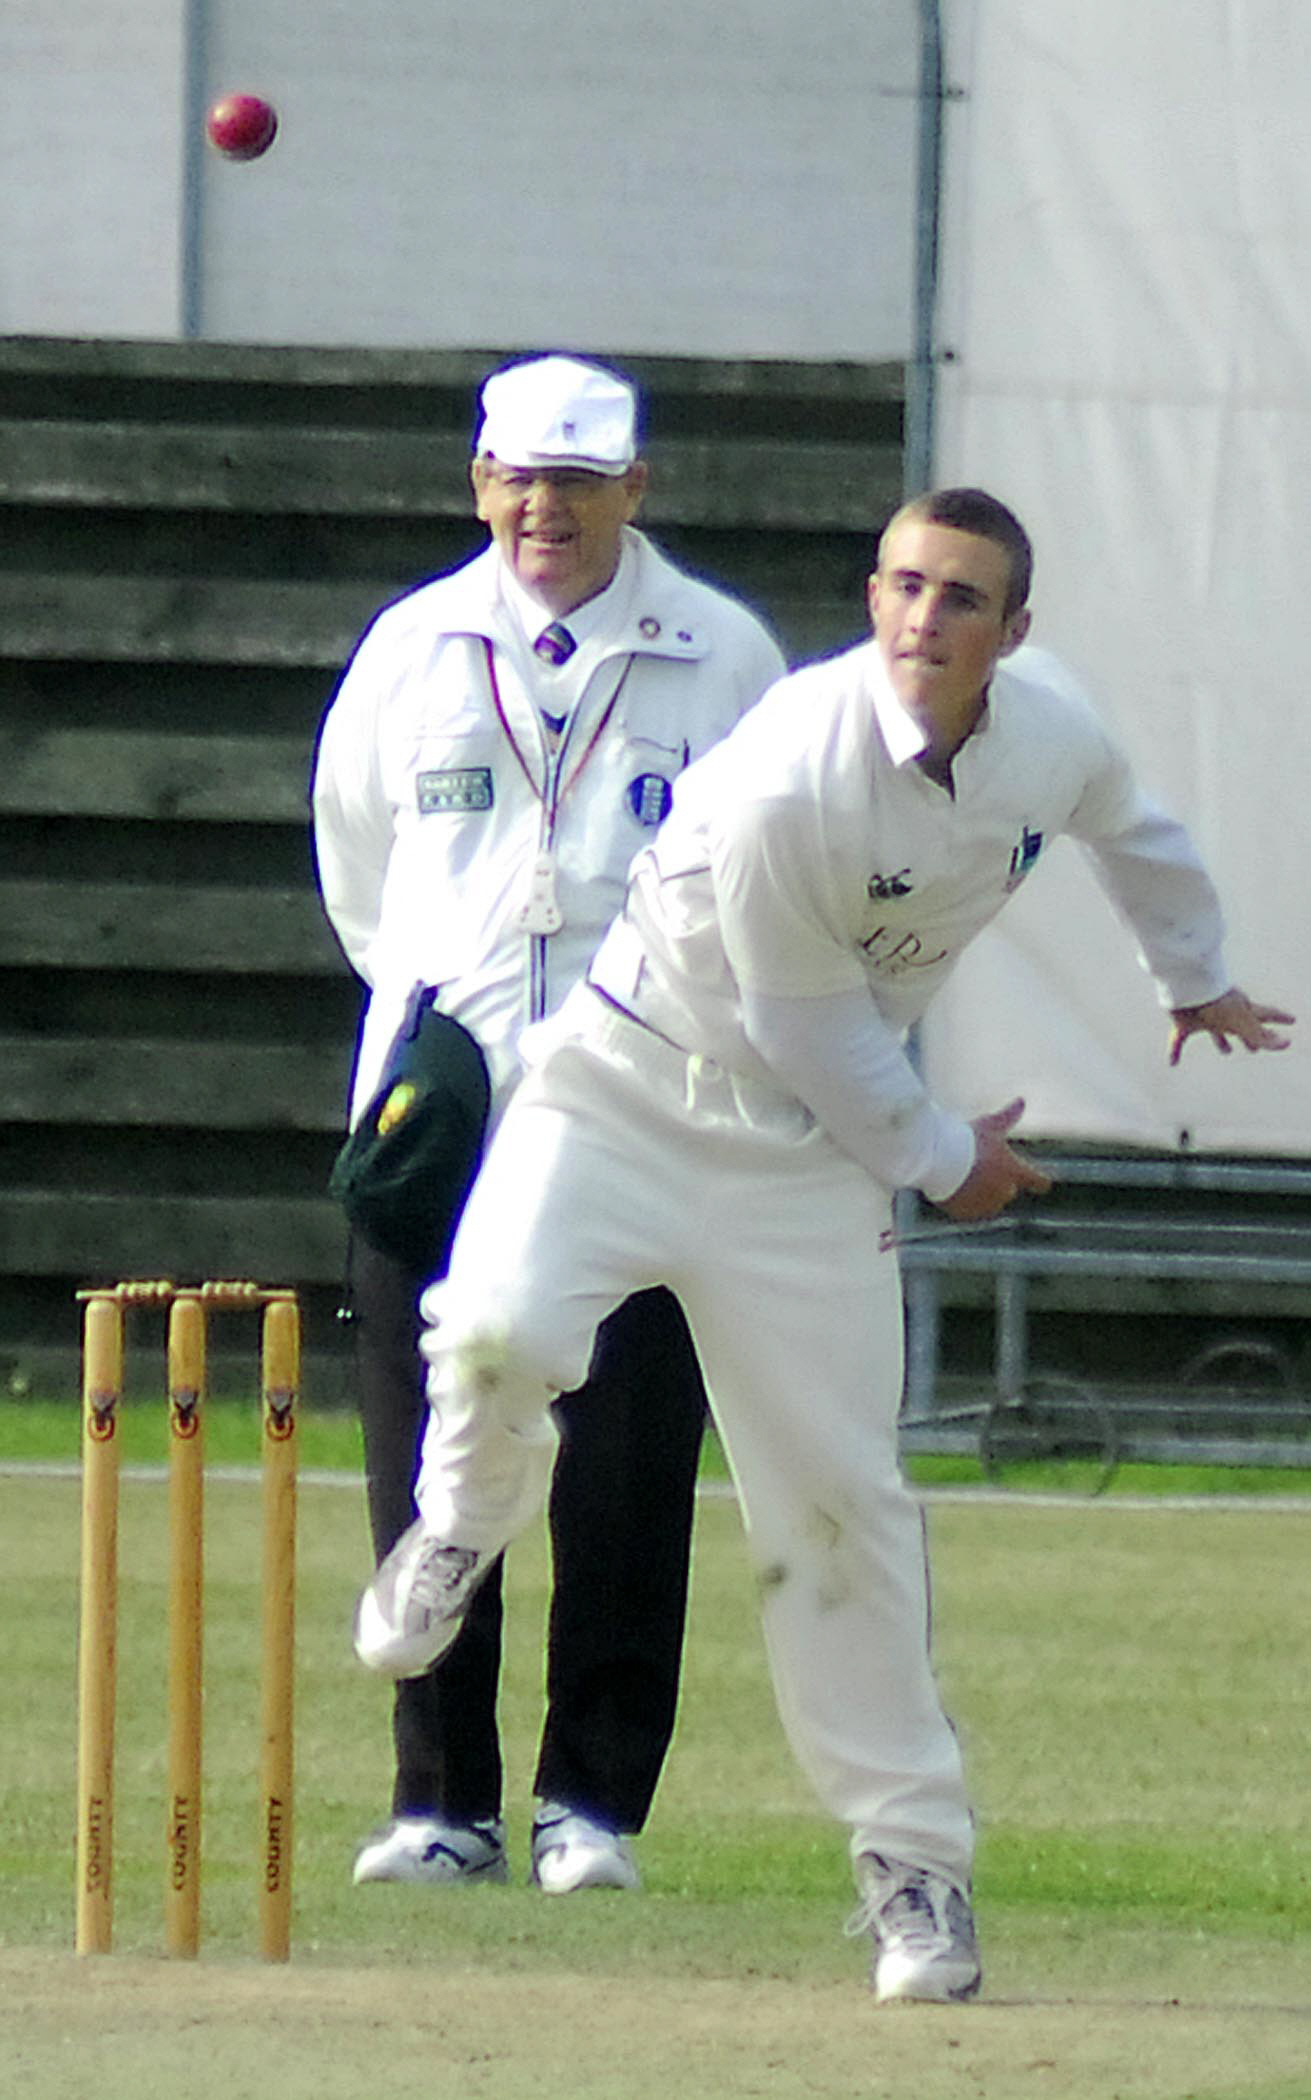 Thames Valley League Seven Wickets For Ben Harris Puts Windsor Cricket Club Back On Track